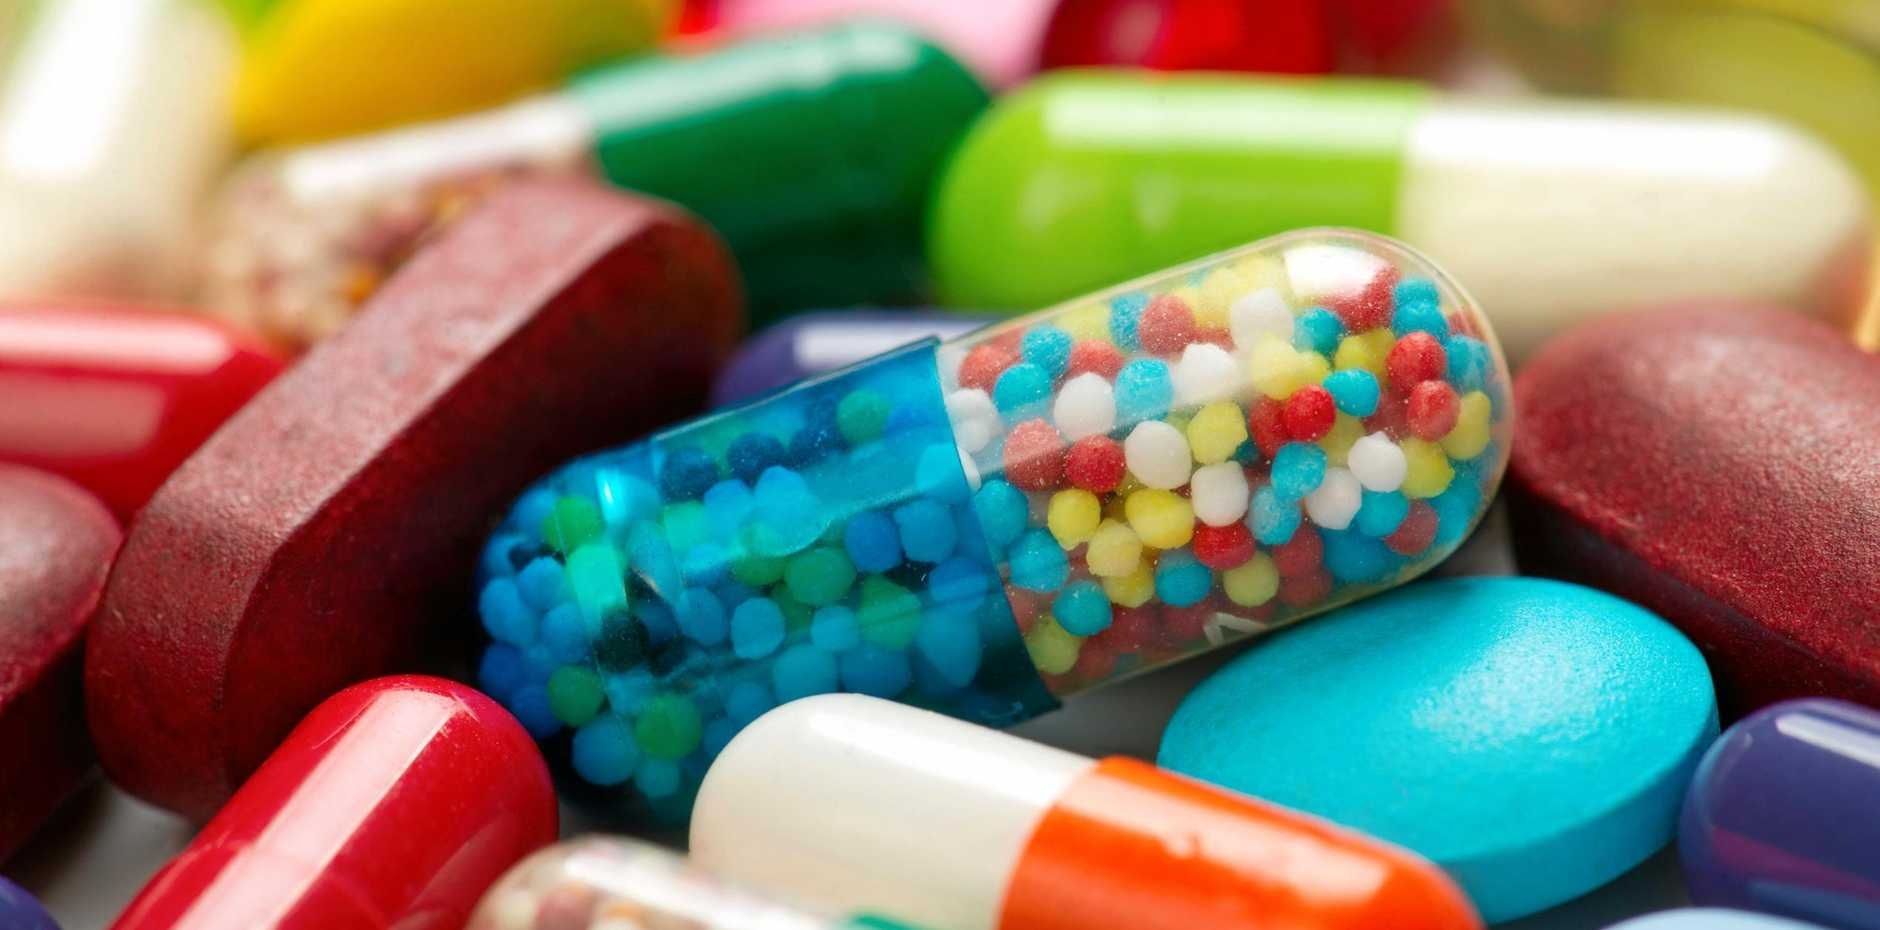 PHARMACIST ADVICE: Consider this advice before you cut, crush or chew medications.